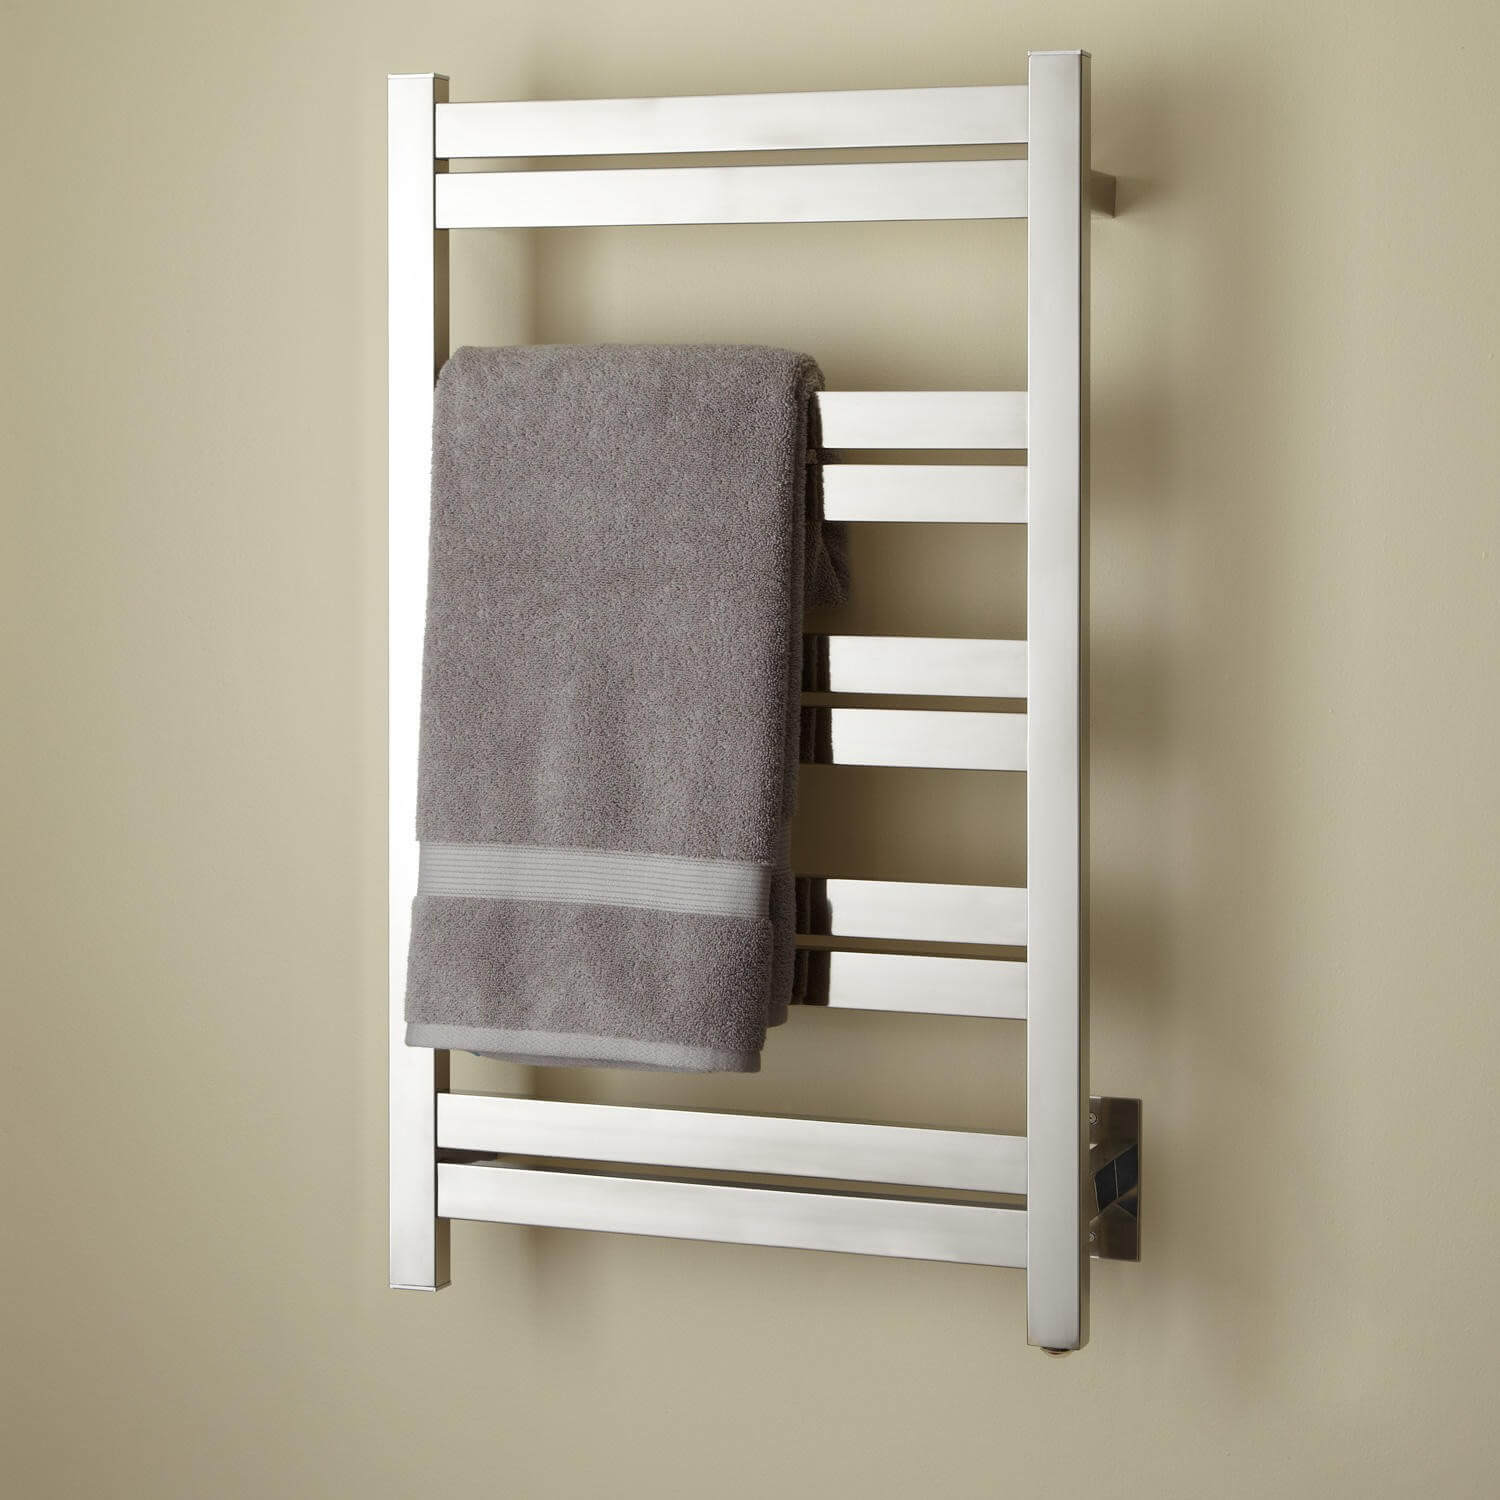 hardwired vs plugin towel warmers